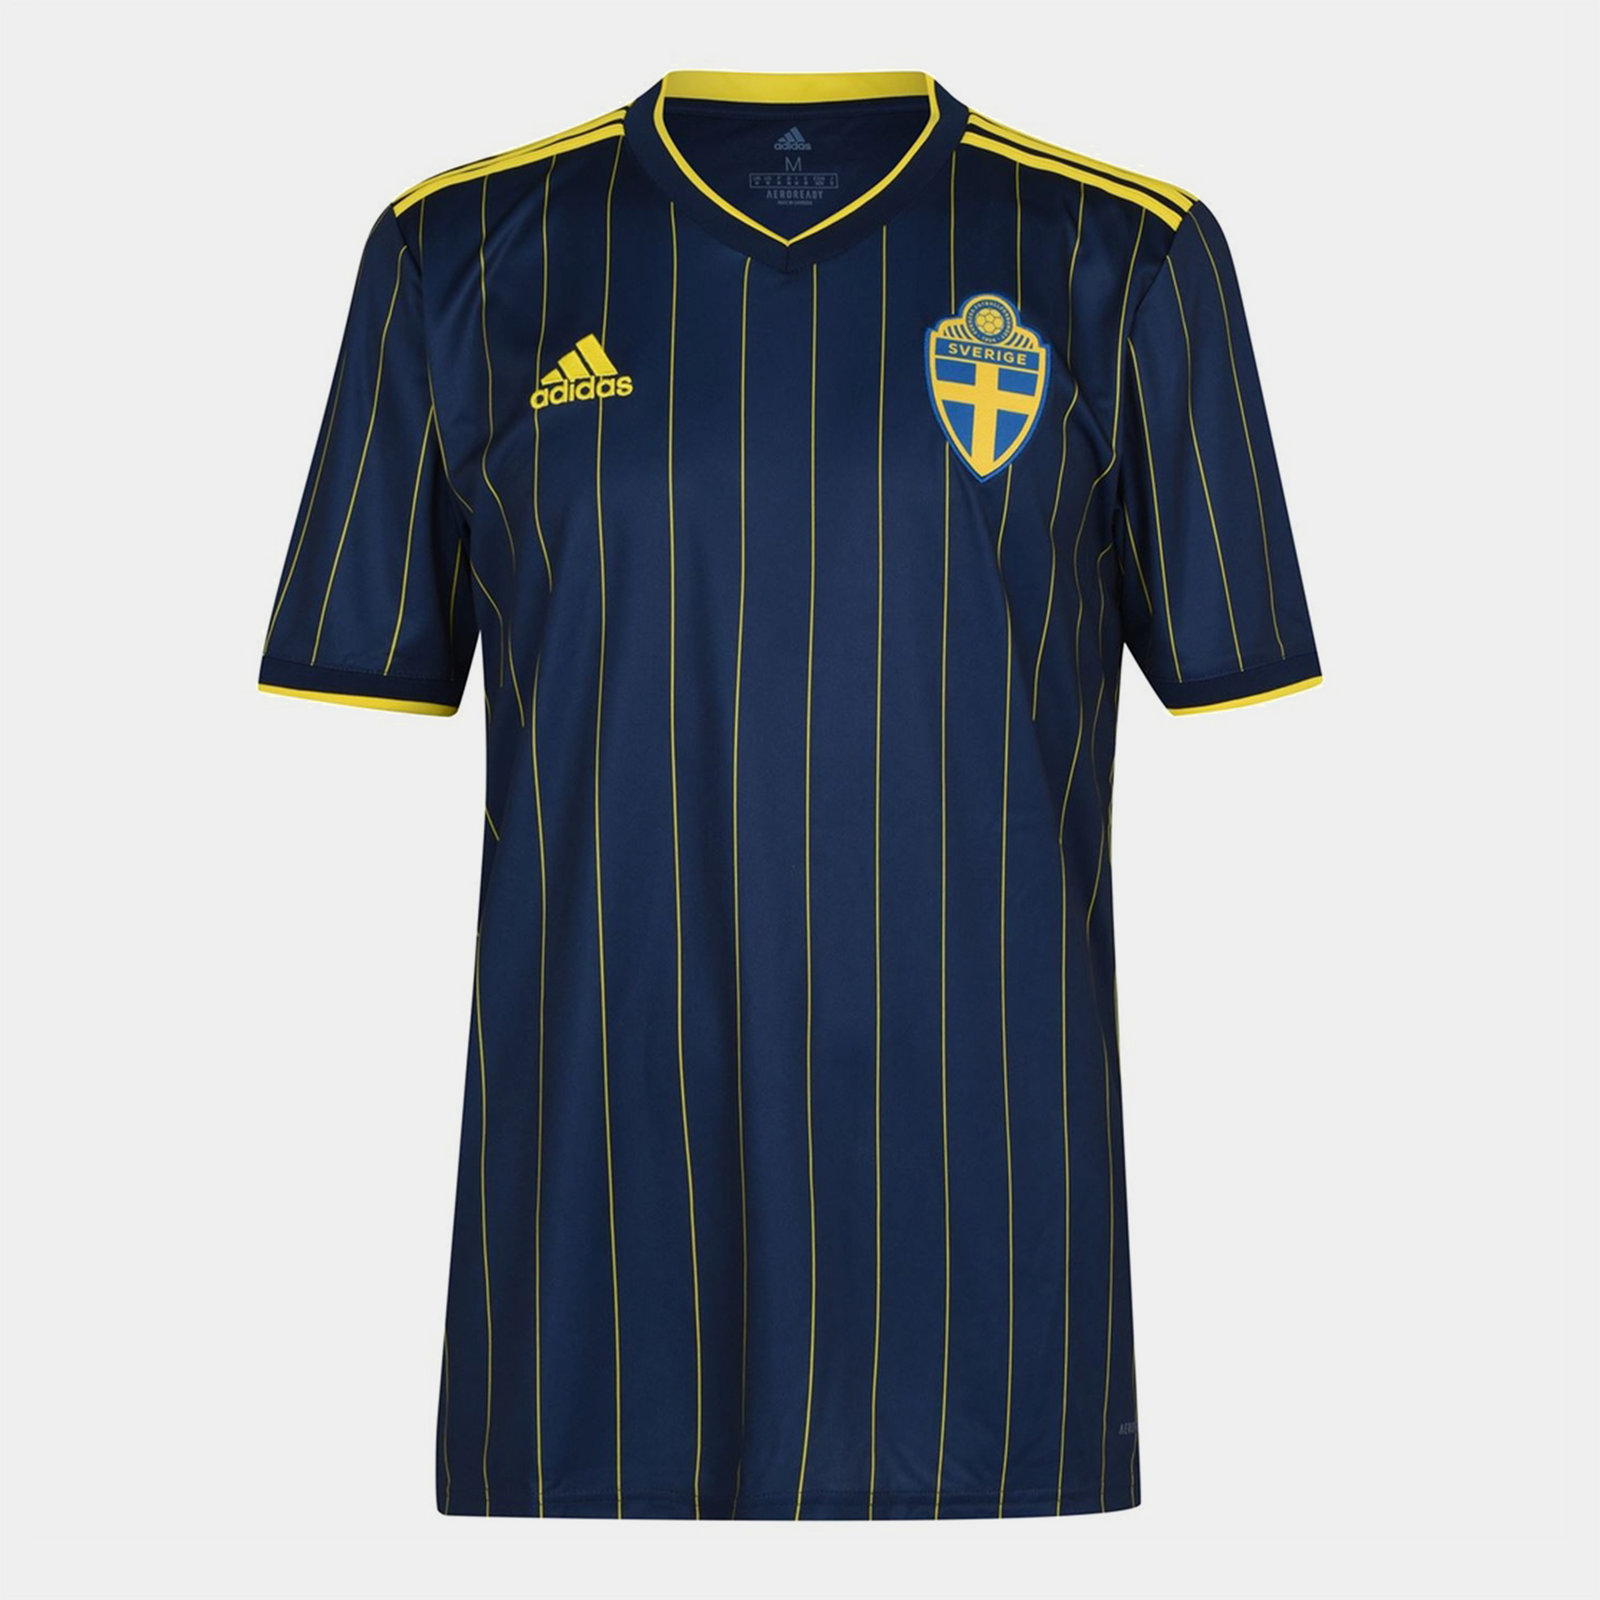 Sweden 2020 Away Football Shirt